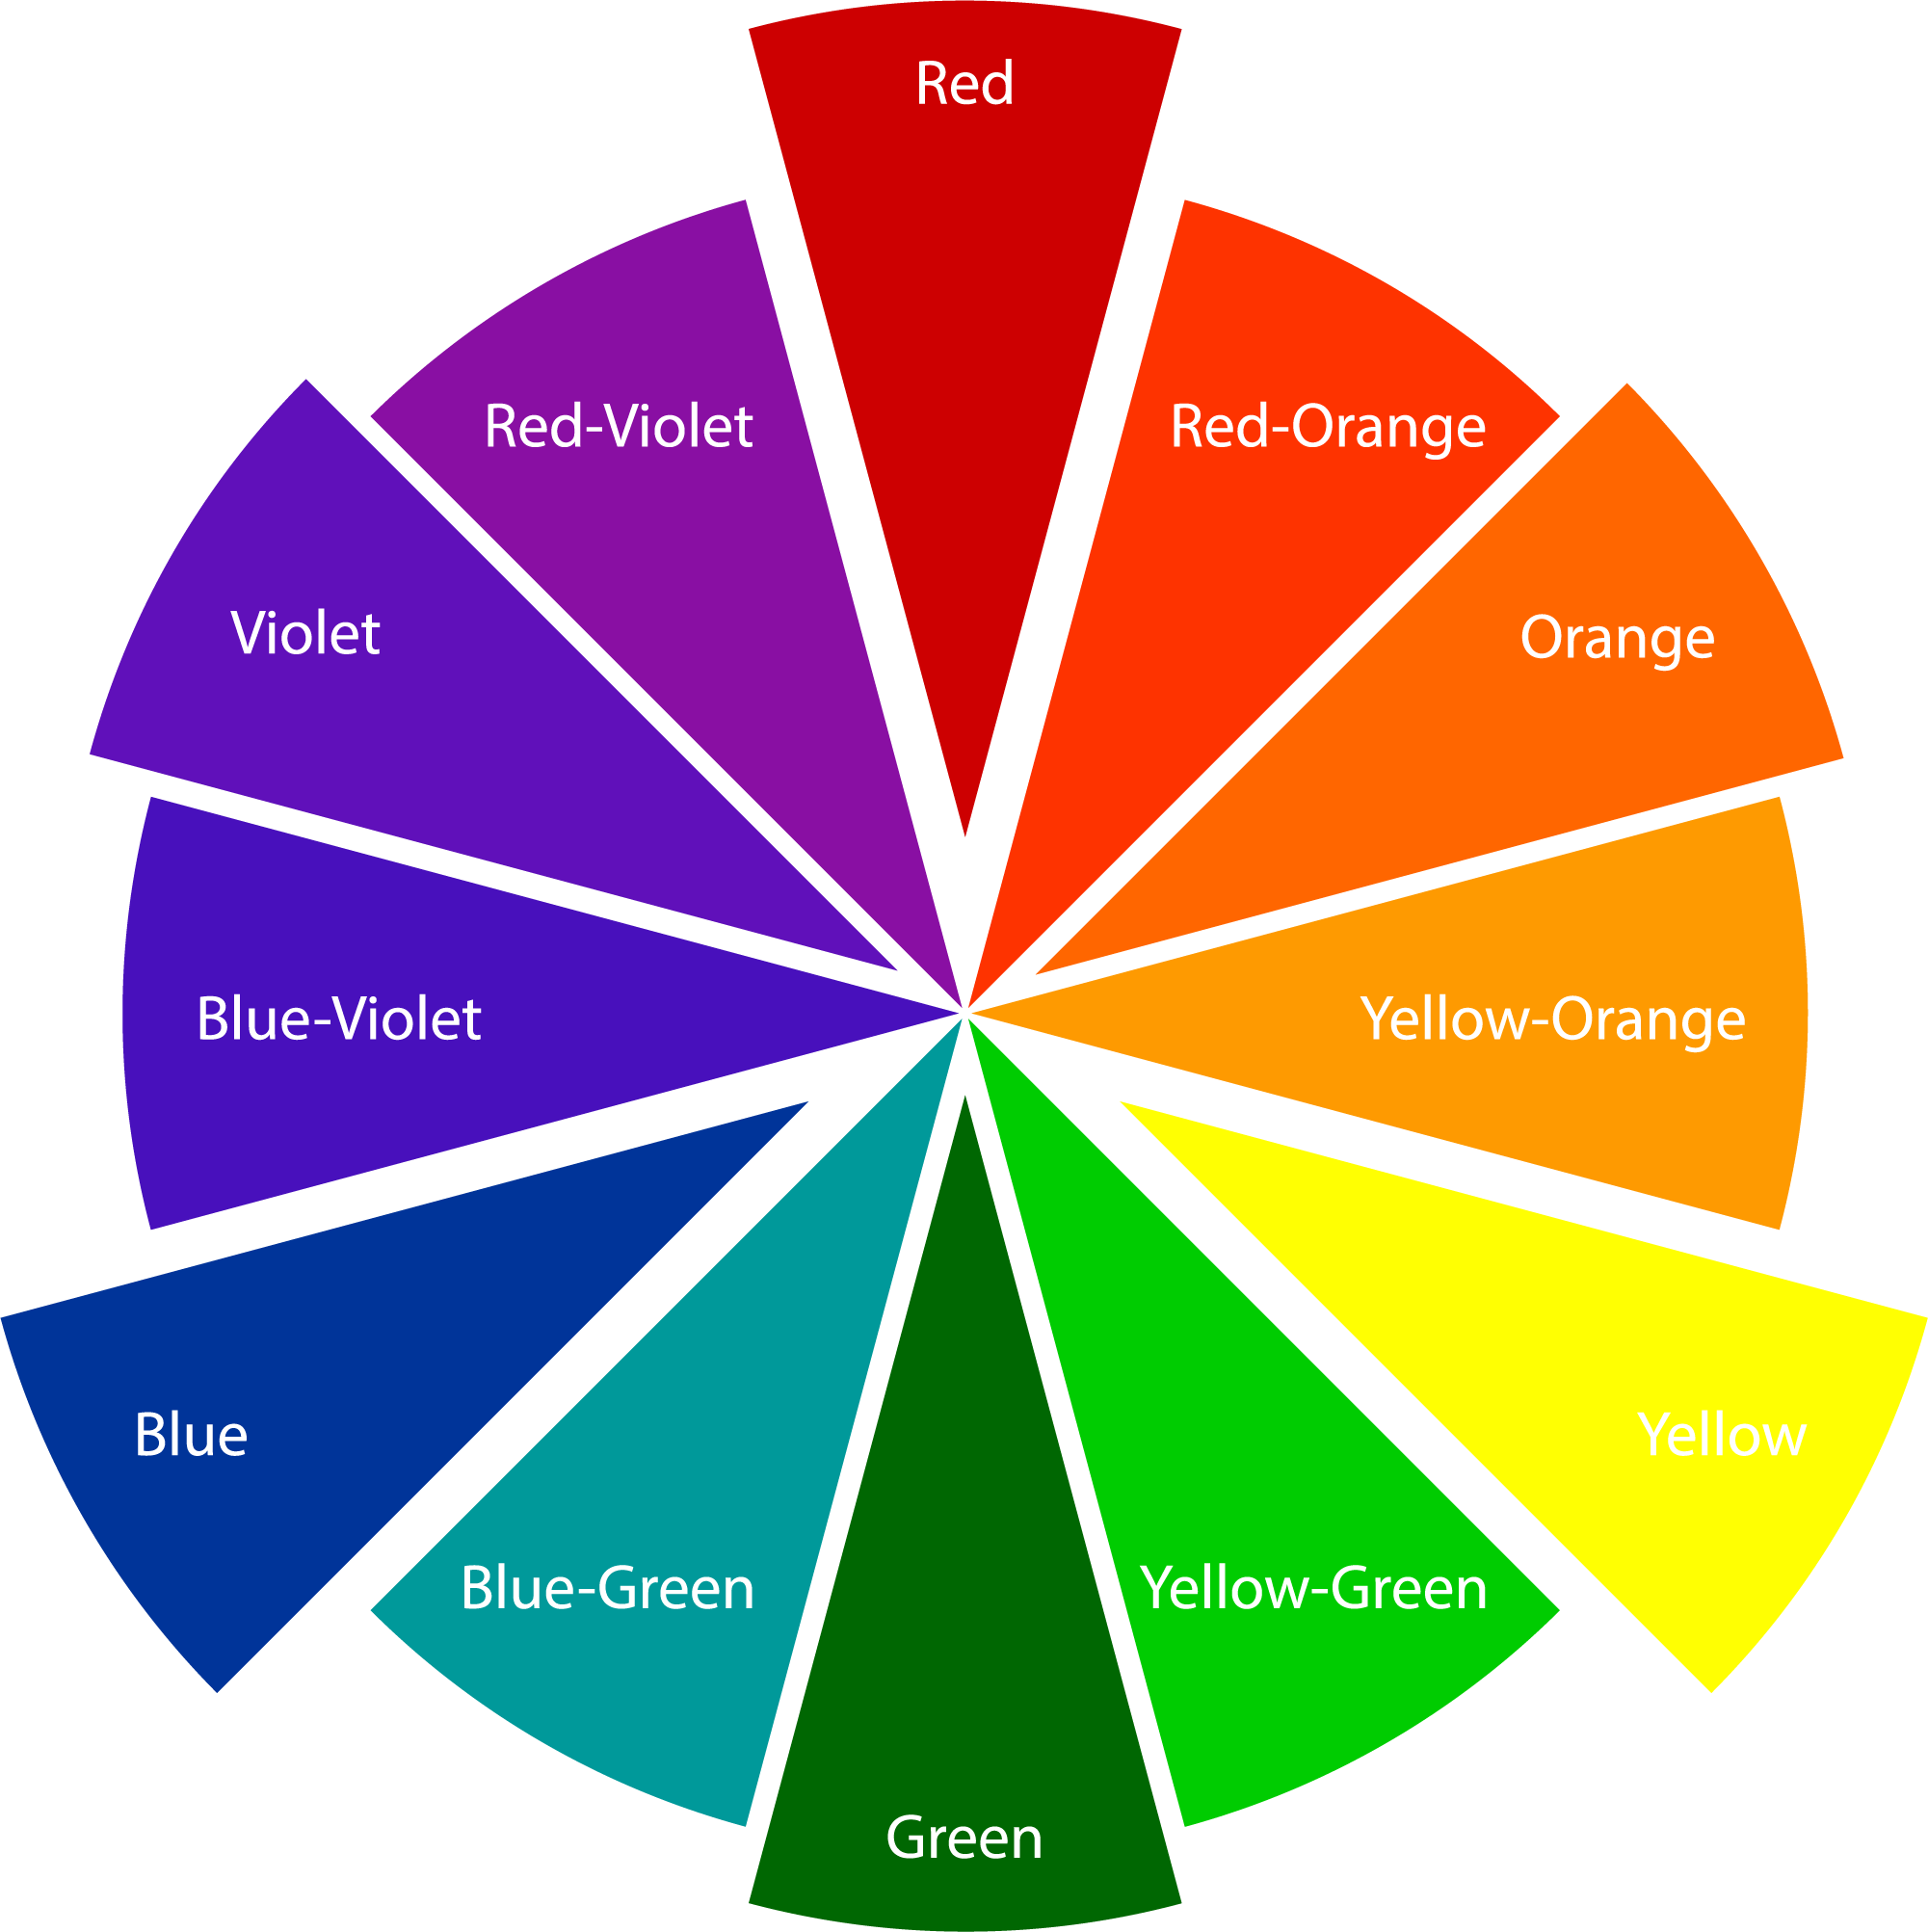 A color wheel graphic arranged to highlight primary, secondary, and tertiary colors.